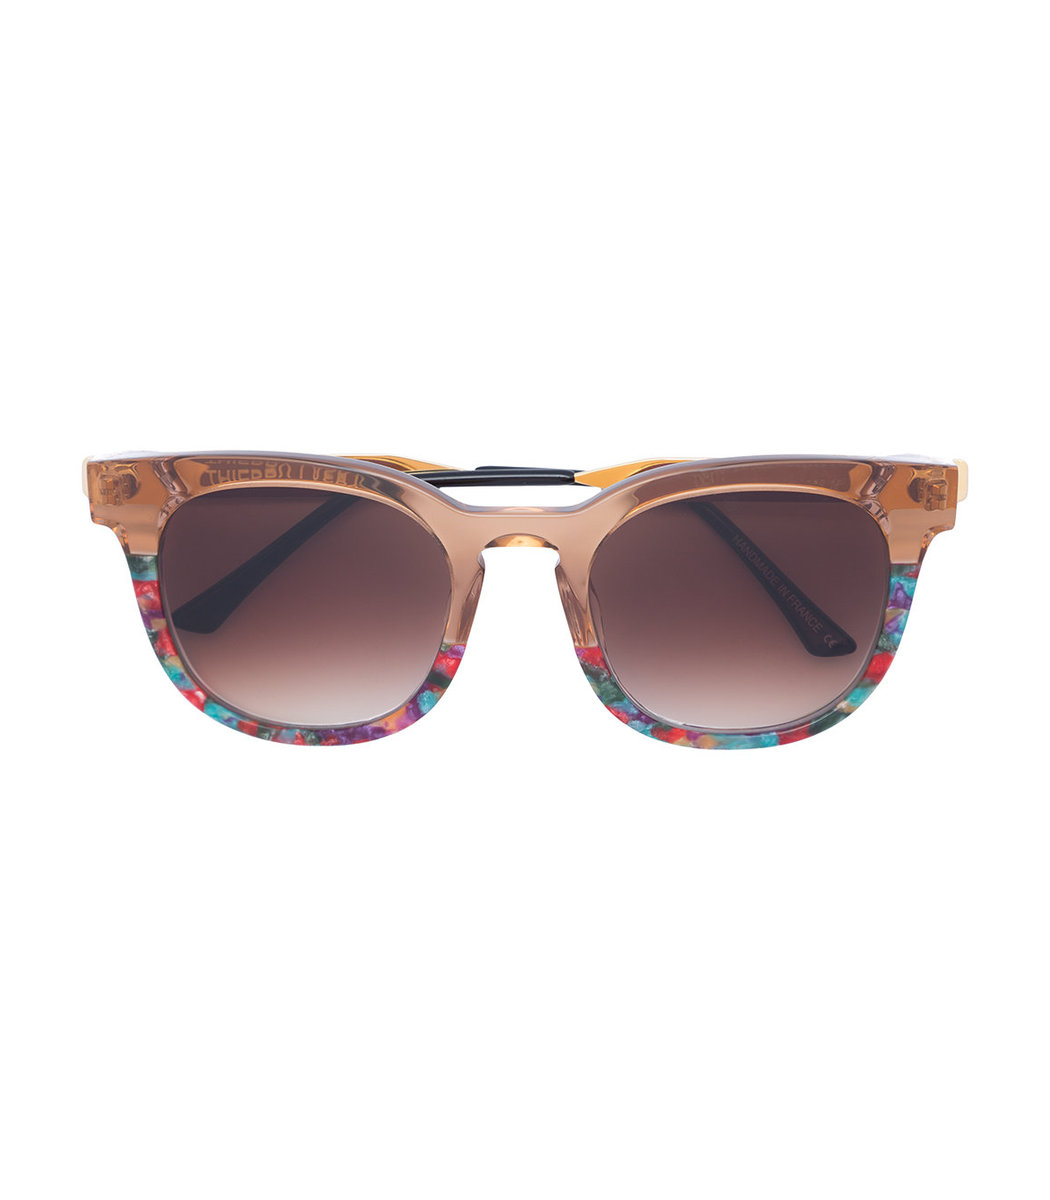 Thierry Lasry Gold Printed Square Sunglasses